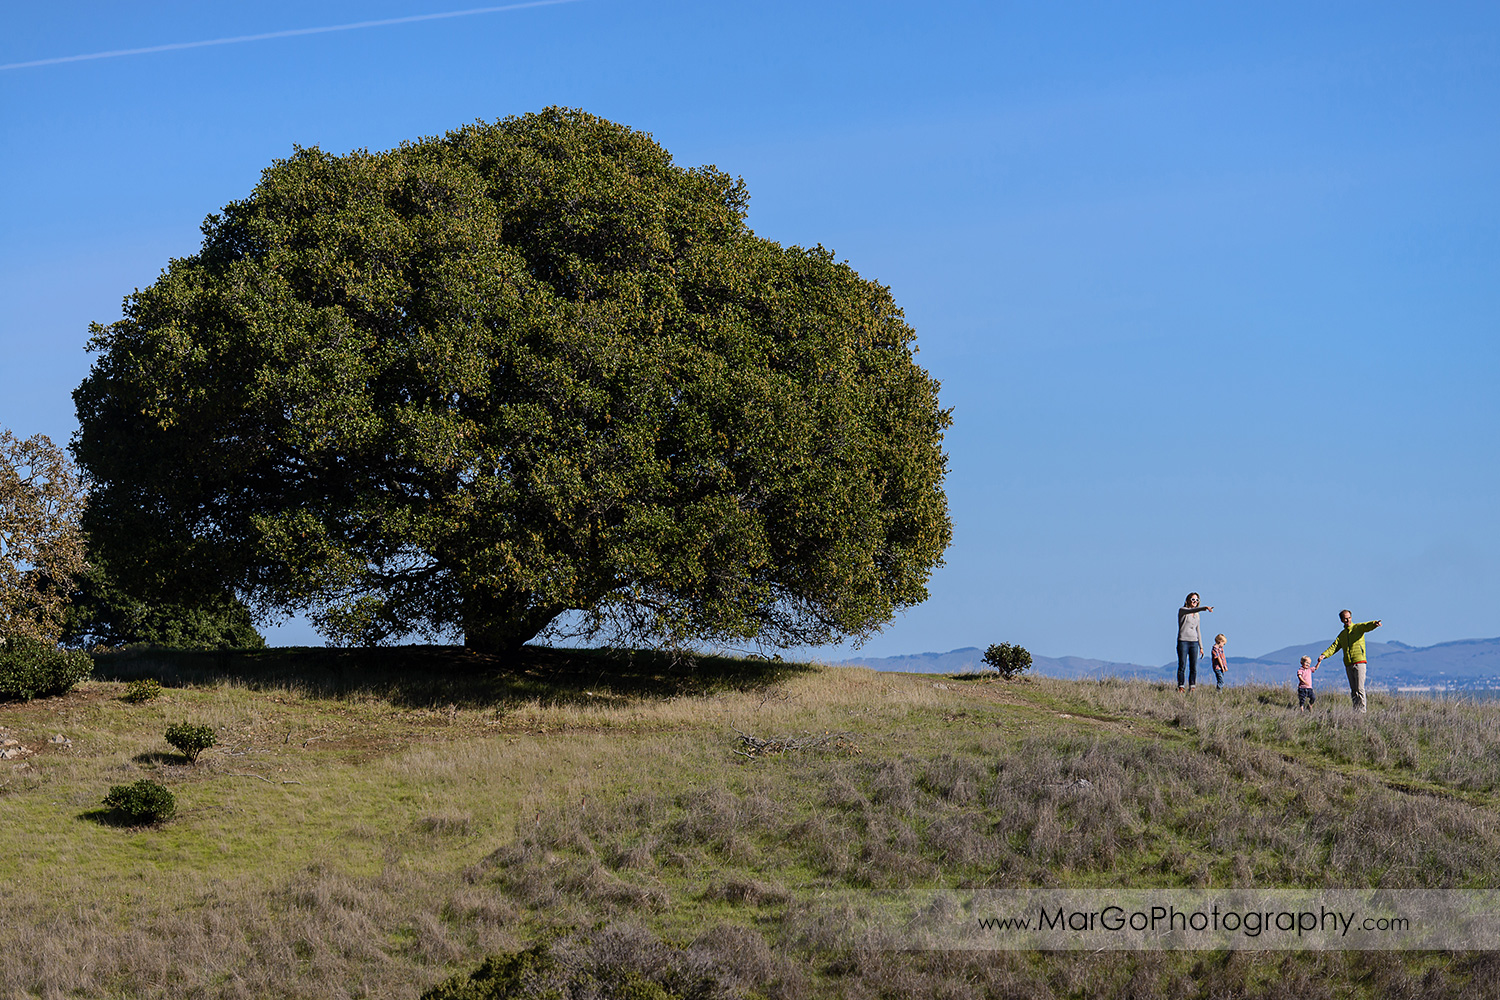 family of four on the top of the hill next to big tree at San Raeael China Camp SP